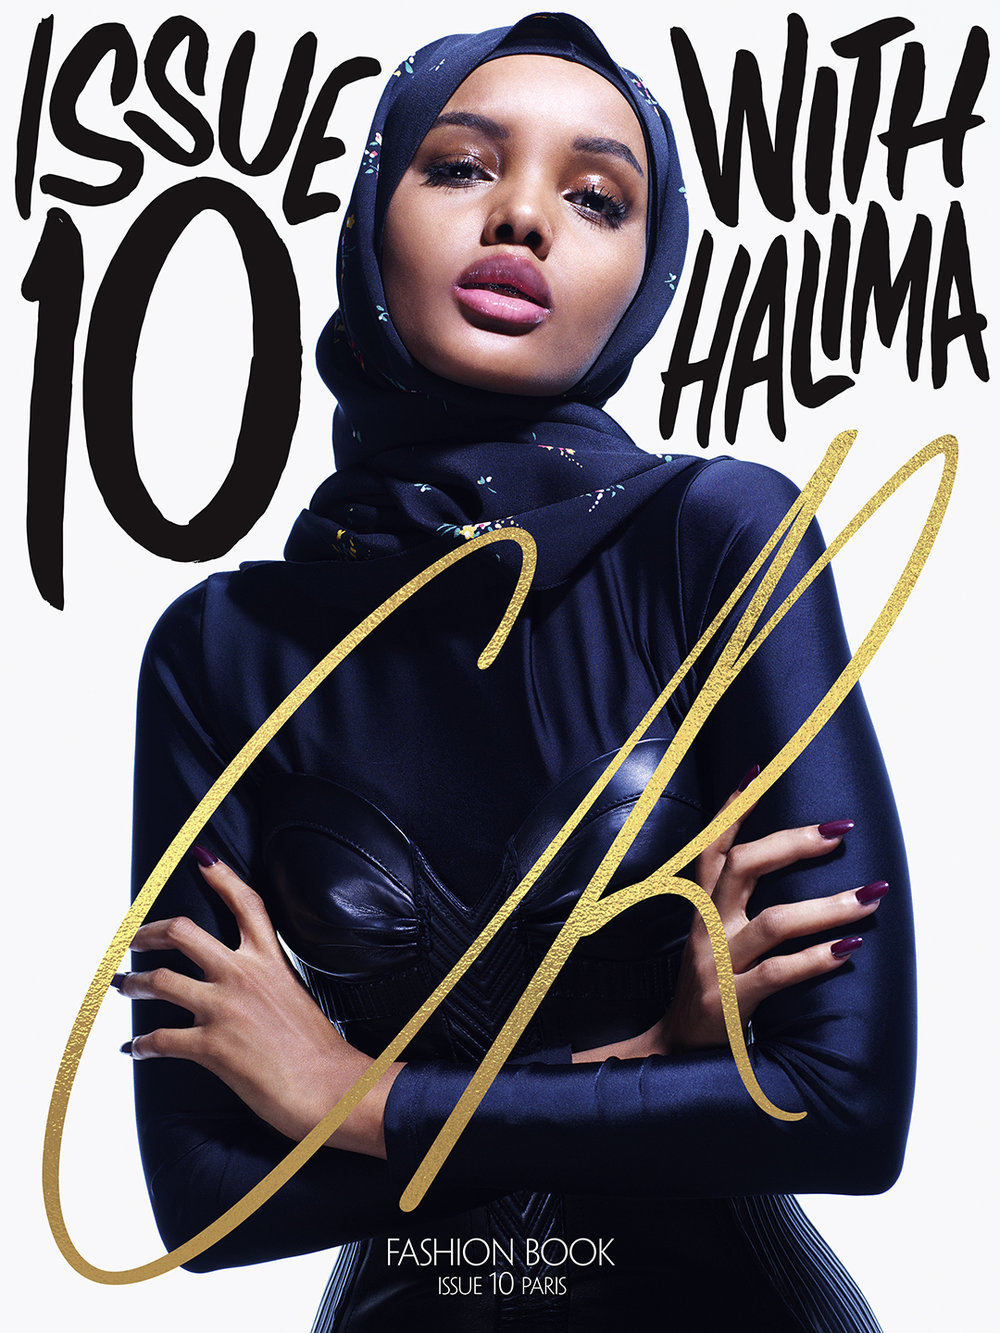 CRF030117COVER-HALIMA.jpg